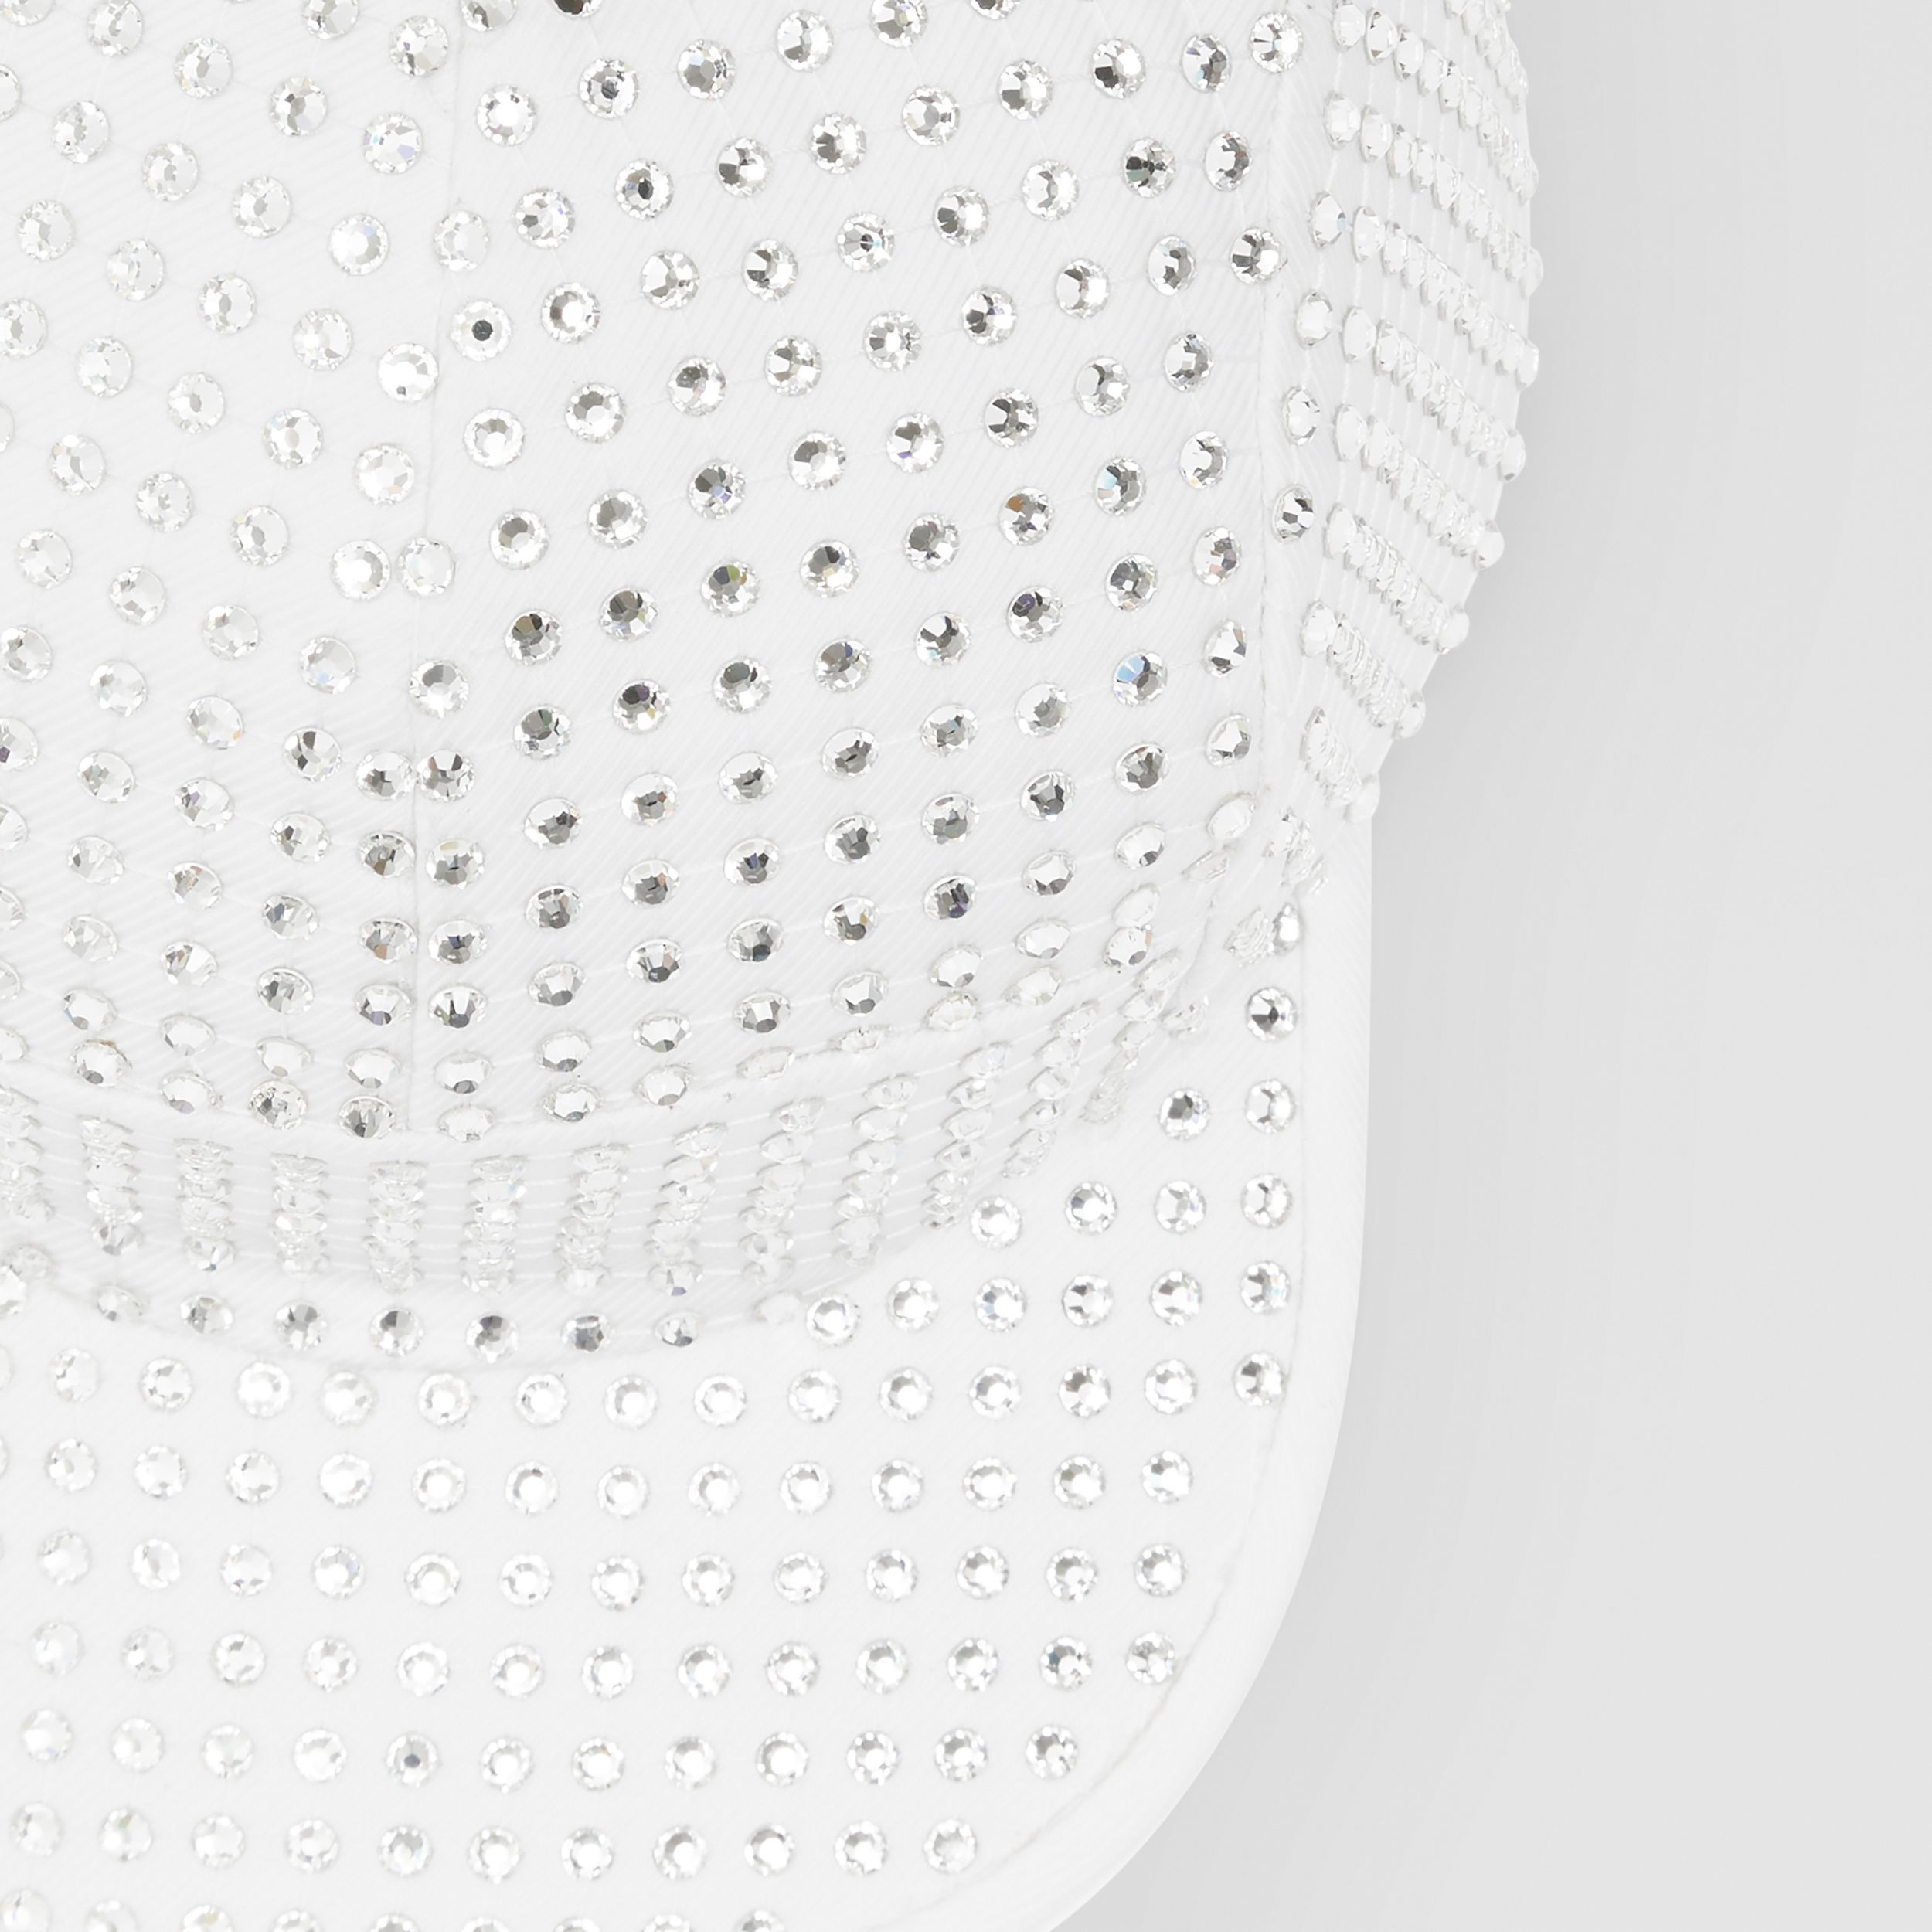 Crystal Mesh Detail Cotton Twill Cap in Optic White | Burberry Canada - 2